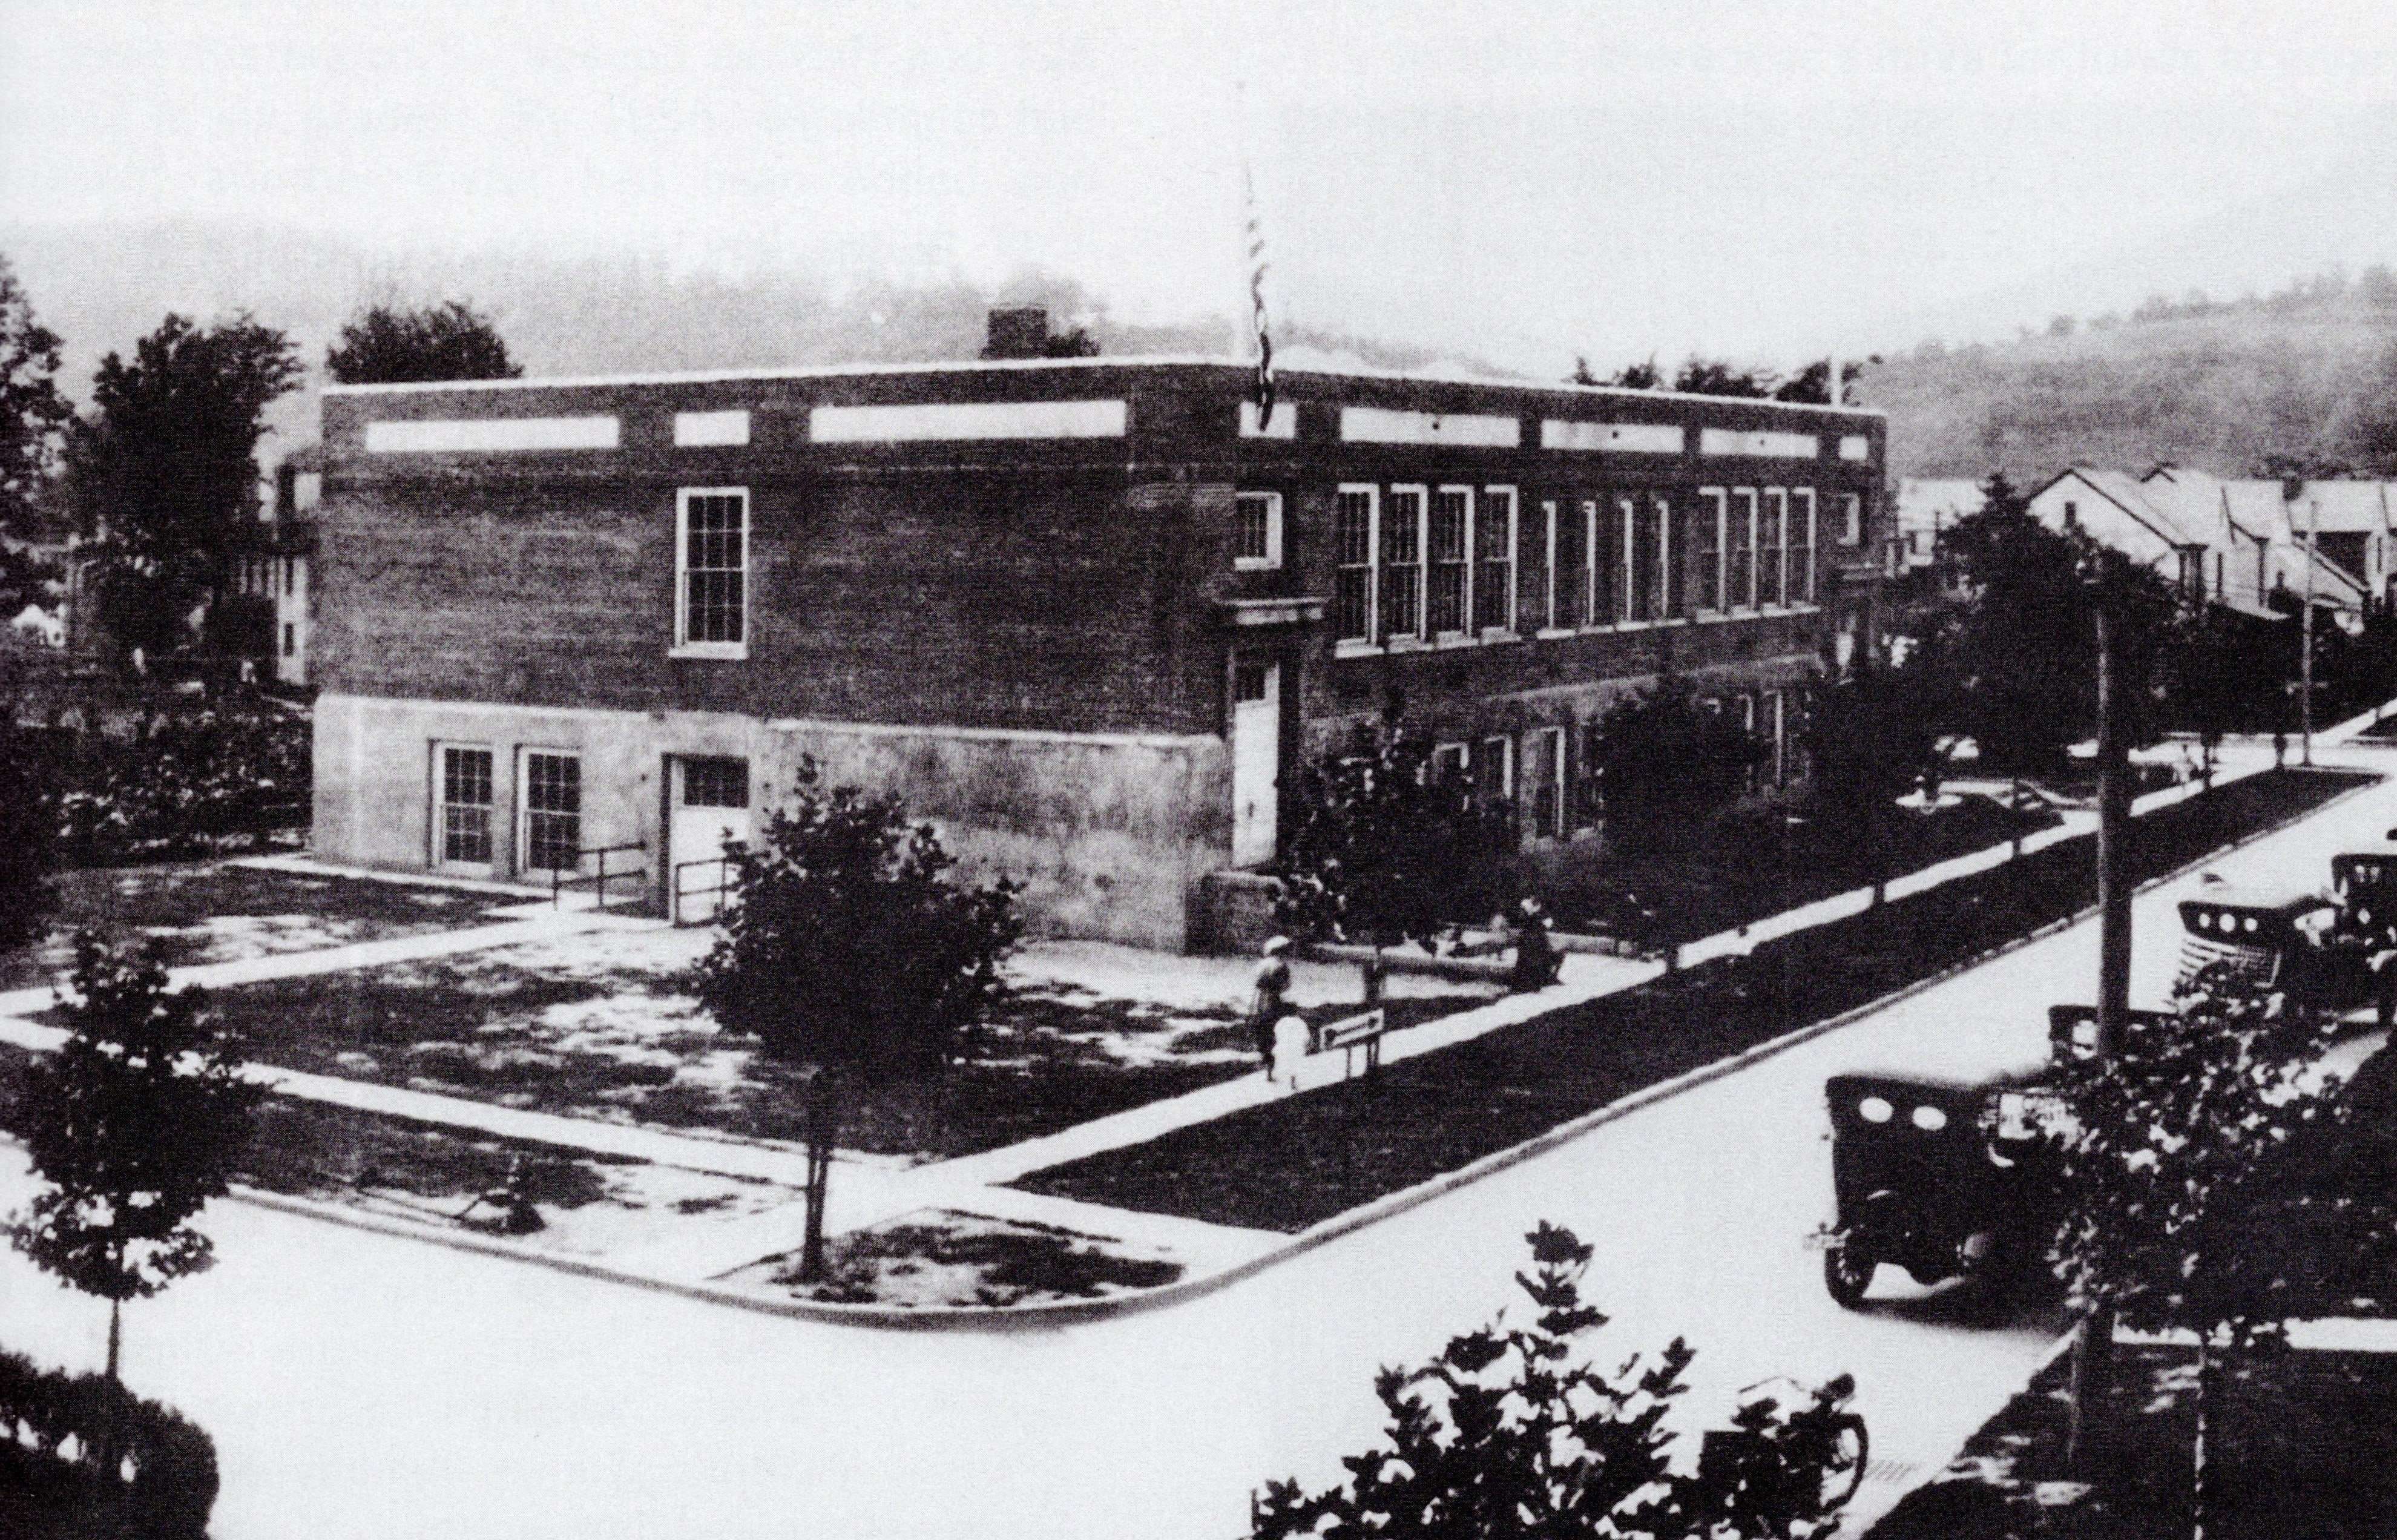 Armor Park School in the 1920s. The school was administered by the U.S. Navy for over twenty years, until after World War 2.